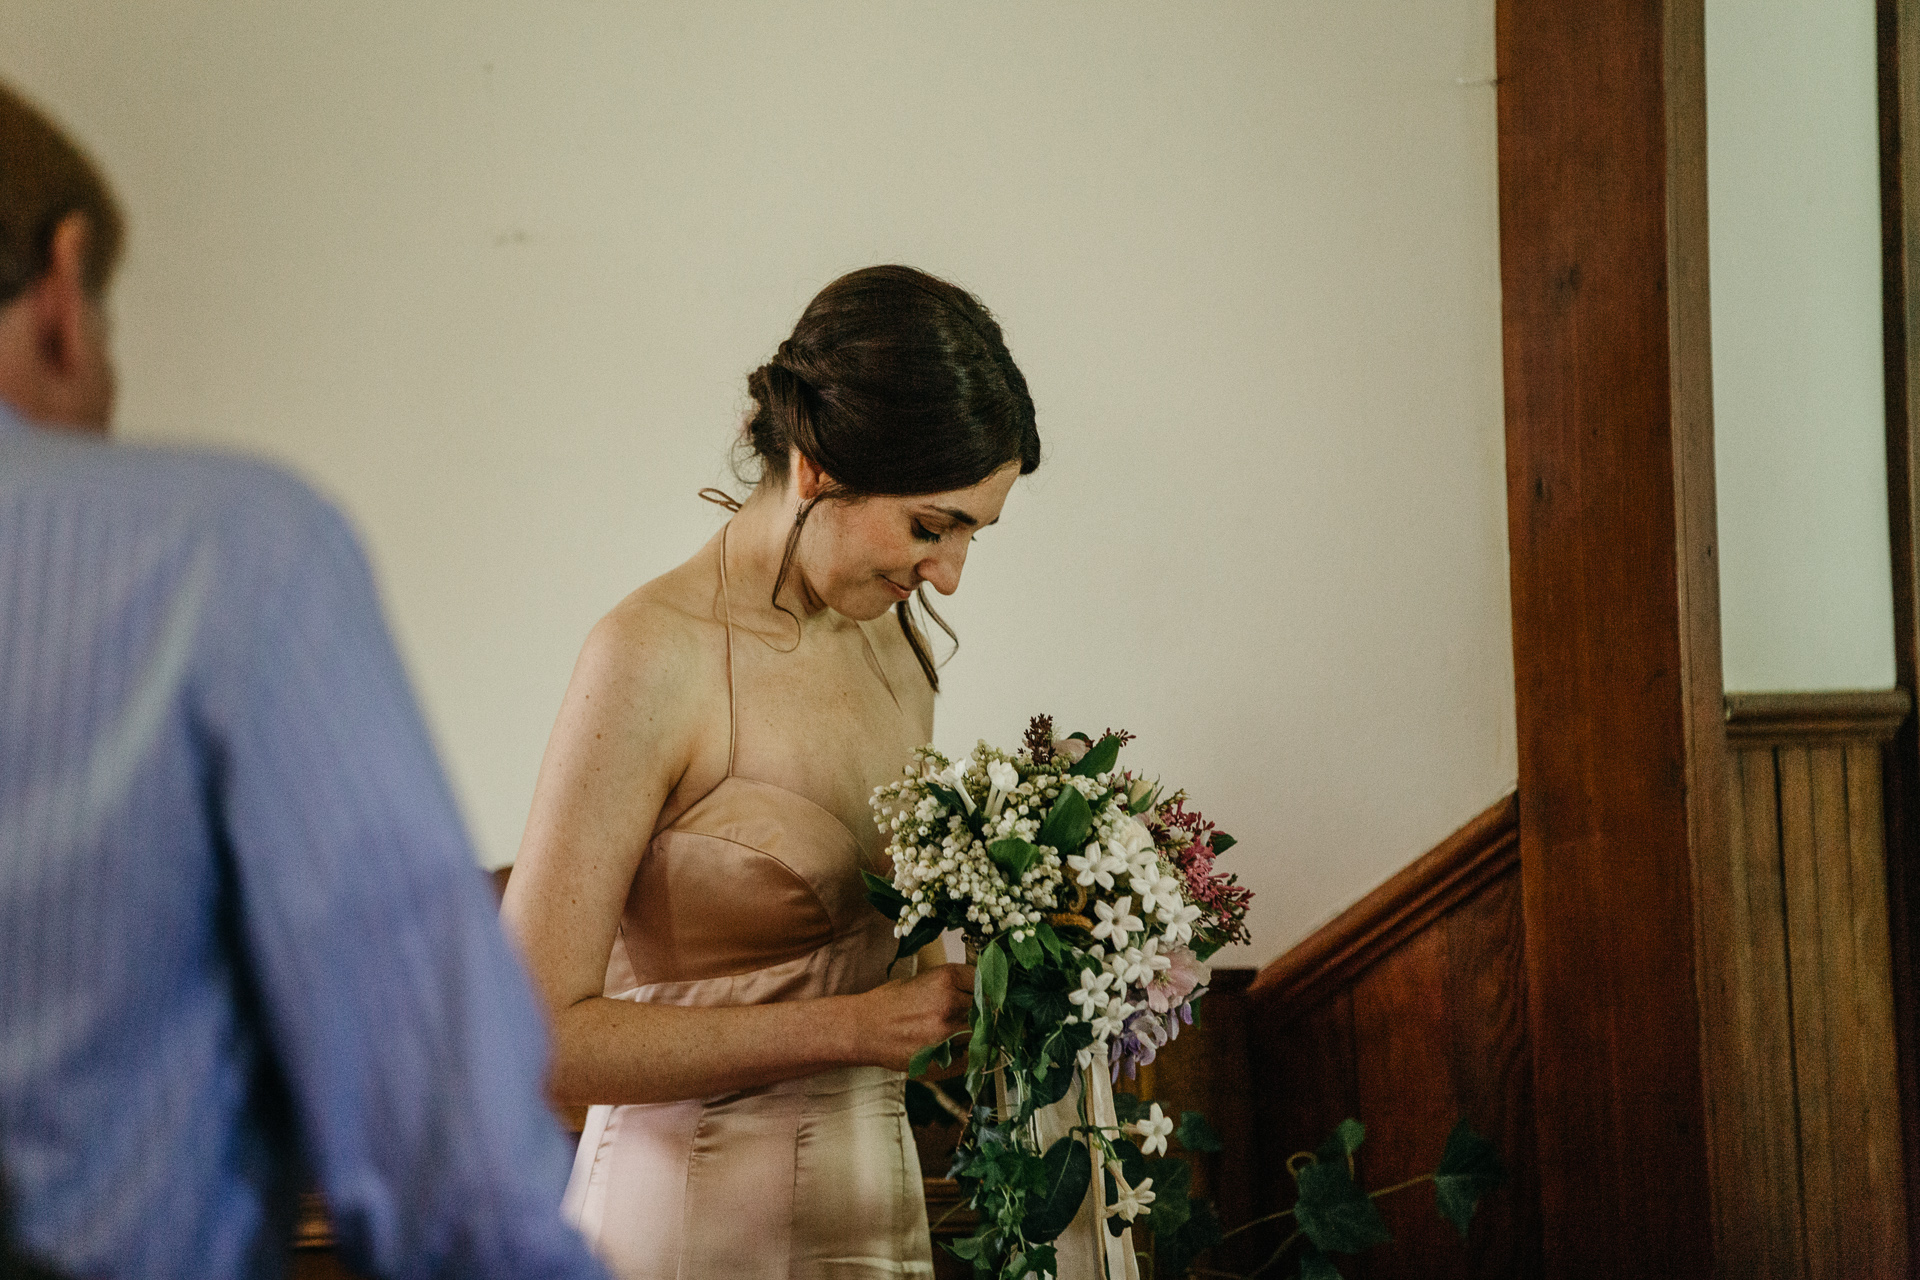 photography by Jess Hunter, intimate Portland wedding photographer, botanical inspired wedding in Portland, OR at a pioneer church, vintage lace wedding dress, hipster Portland wedding, elopement in the forests of Oregon, forest bride, vintage bridal style, Jessica L Hunter, Seattle elopement photographer, PDX wedding, bride getting ready in a vintage robe